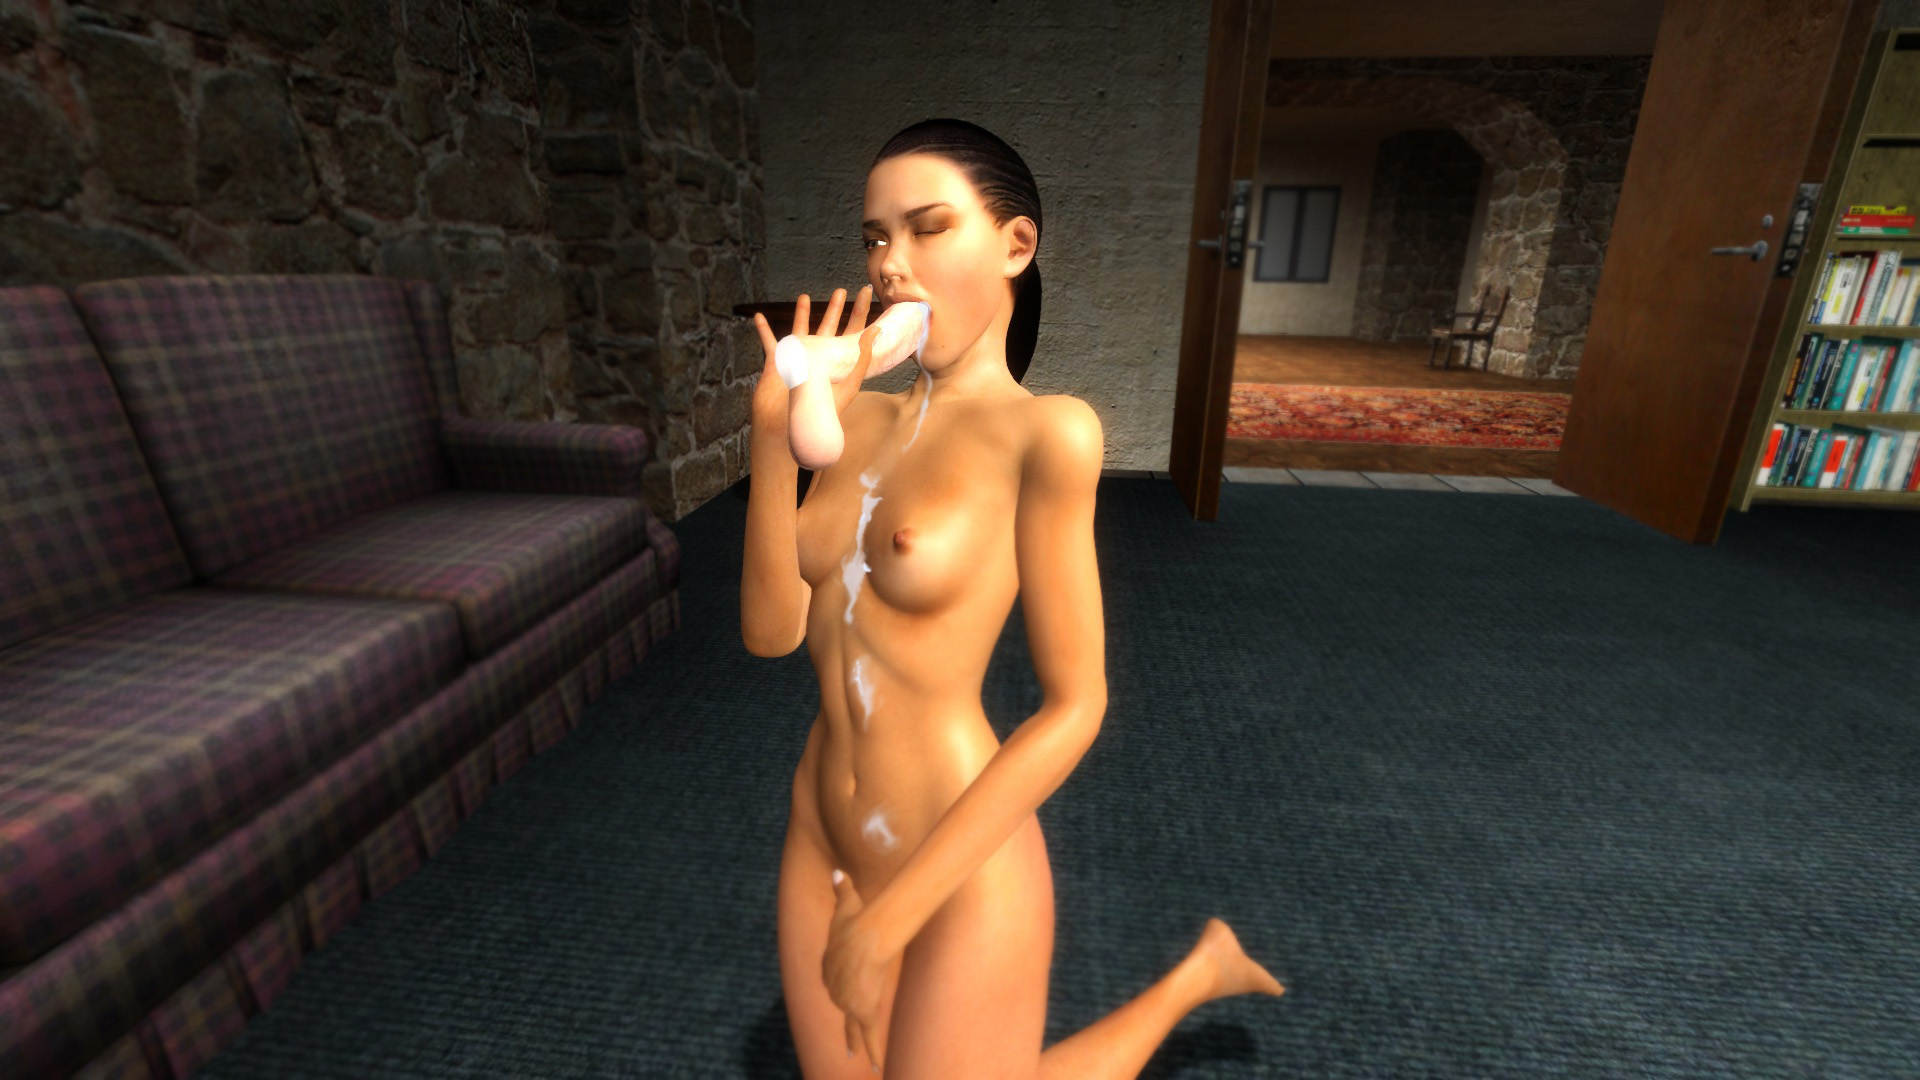 Half life 2 female npc naked sex clip